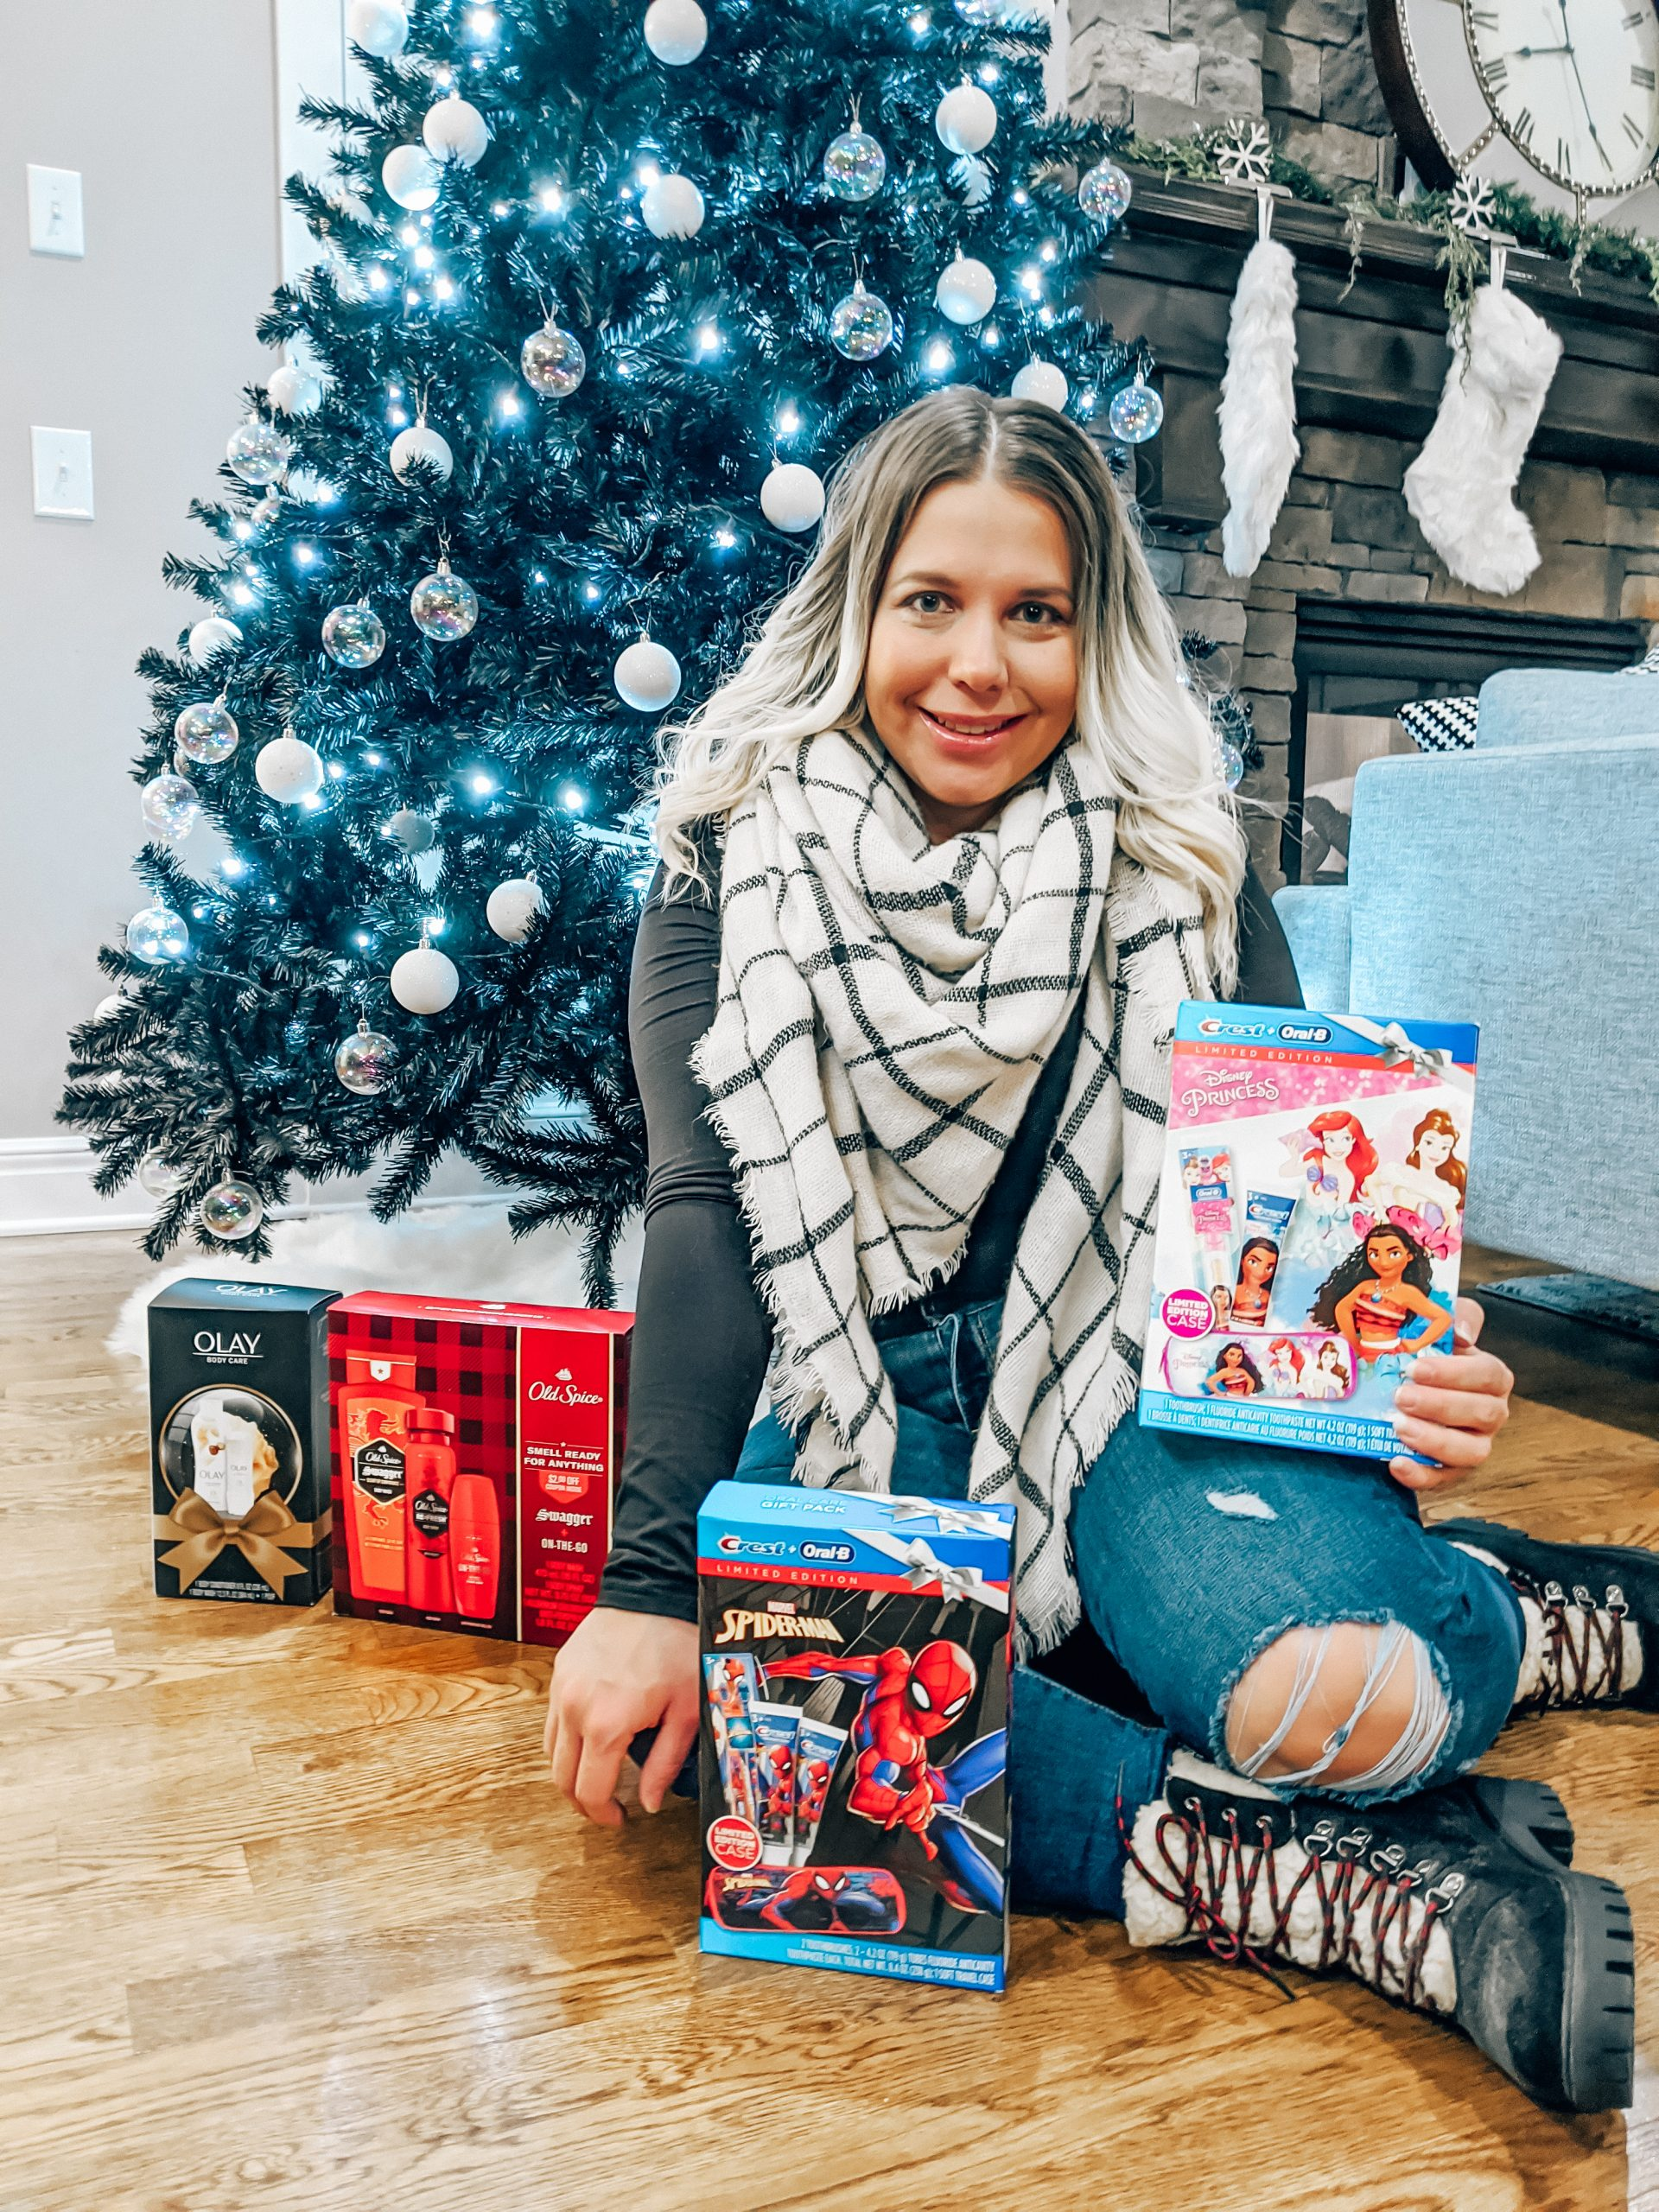 Easy Gifts for Everyone on Your List! These holiday gift packs are a great gift idea for anyone on your list. Choose a different one for each member of your family! #giftideas #giftsforher #giftsforhim